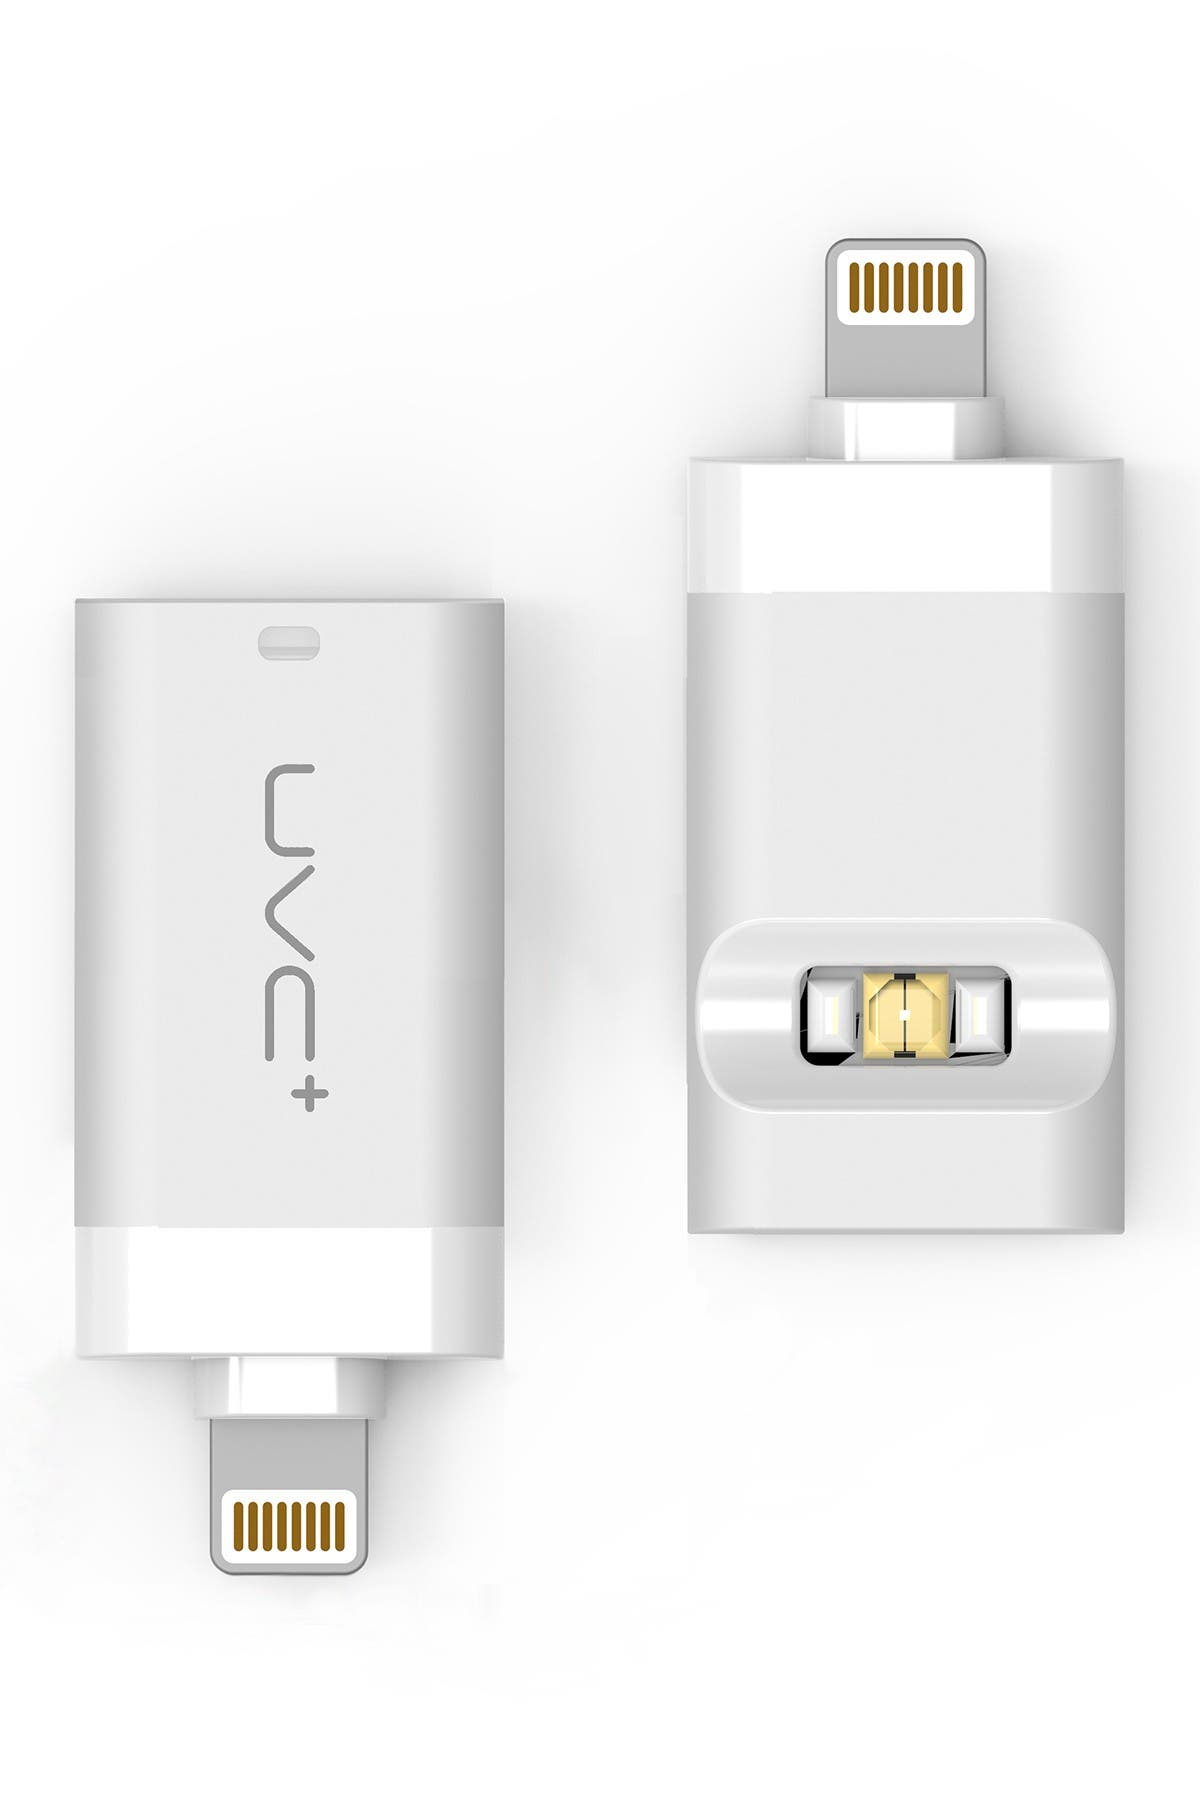 PHUNKEE TREE TECH ACCESSORIES White Mini UV Sanitizer Powered by Your Phone - for iPhone & iPad